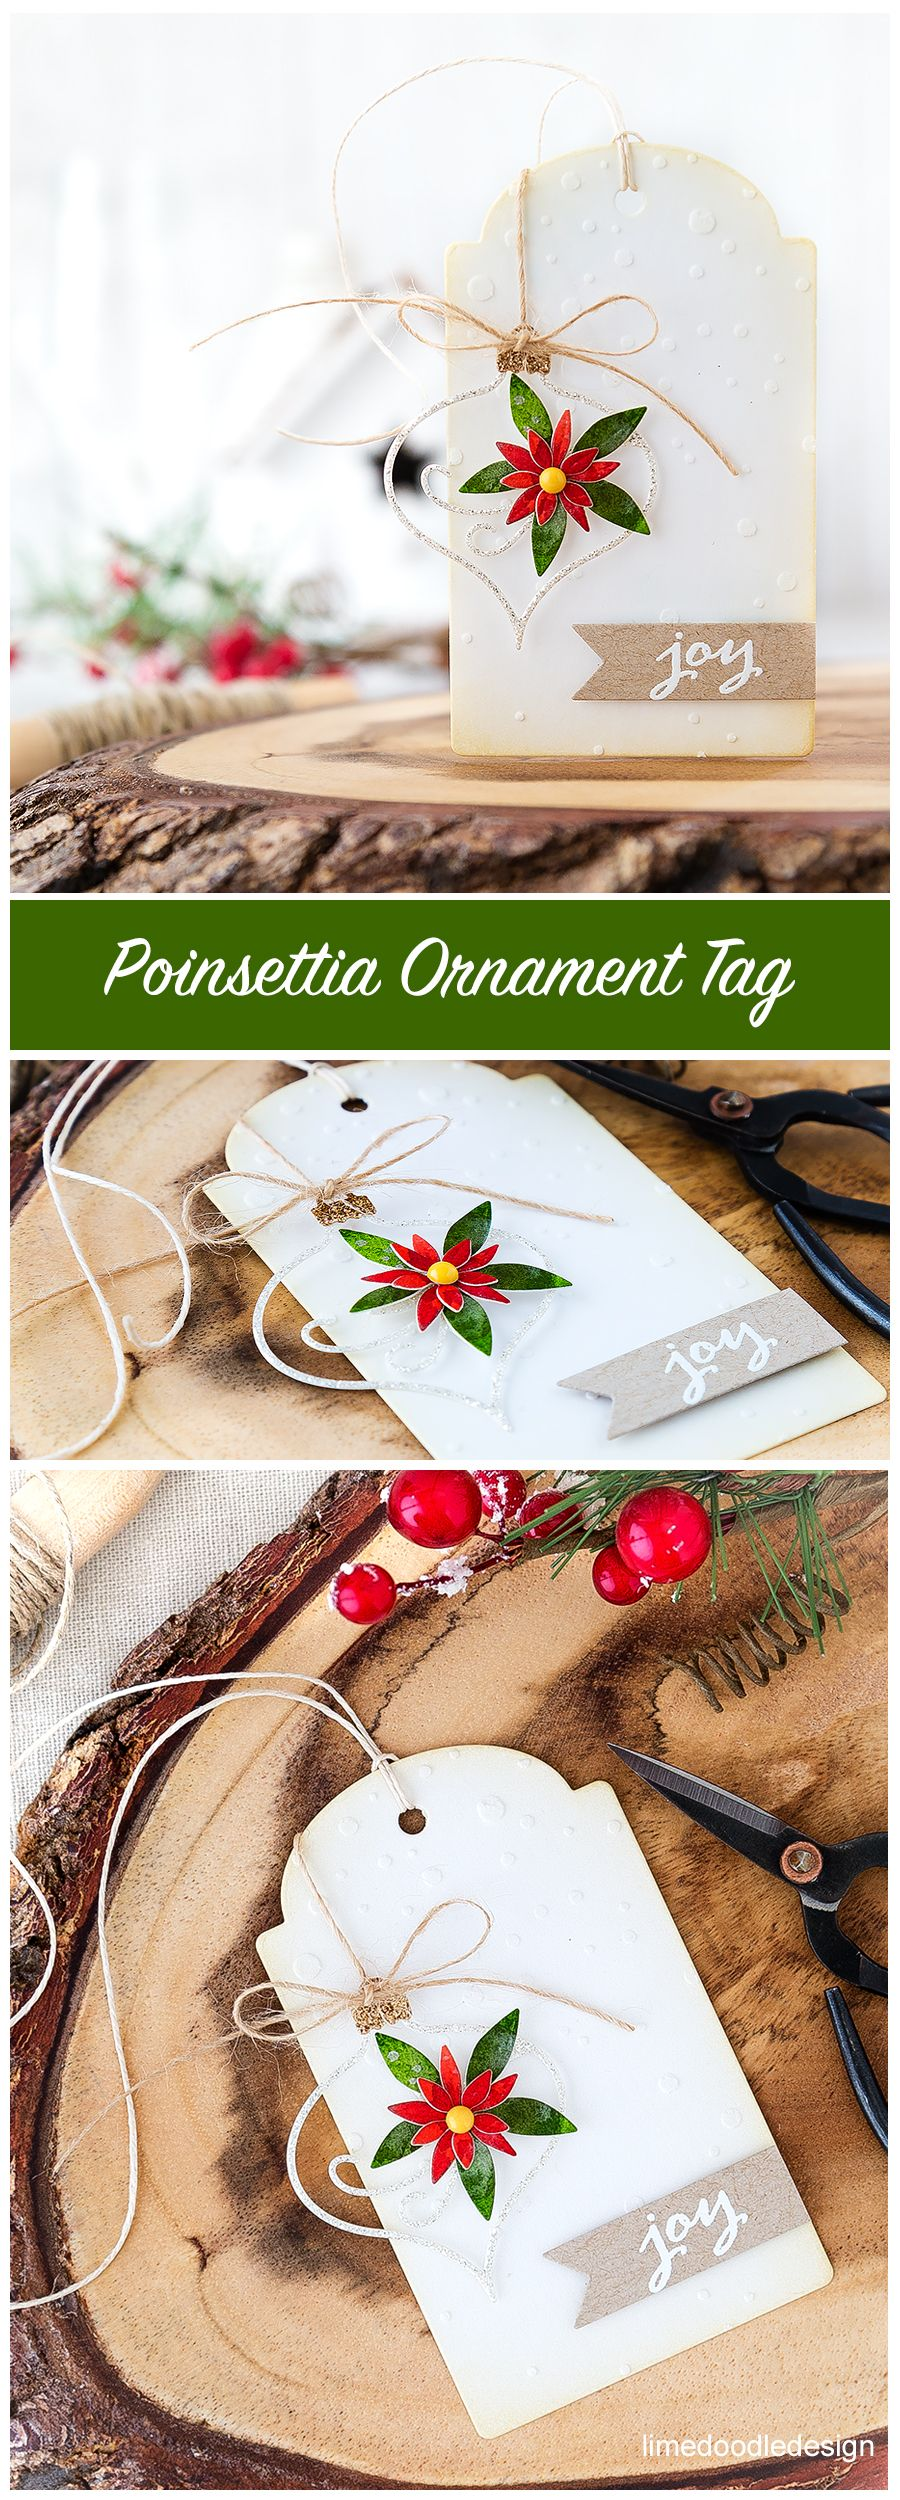 Christmas In July – Poinsettia Ornament Tag #holidaysinjuly